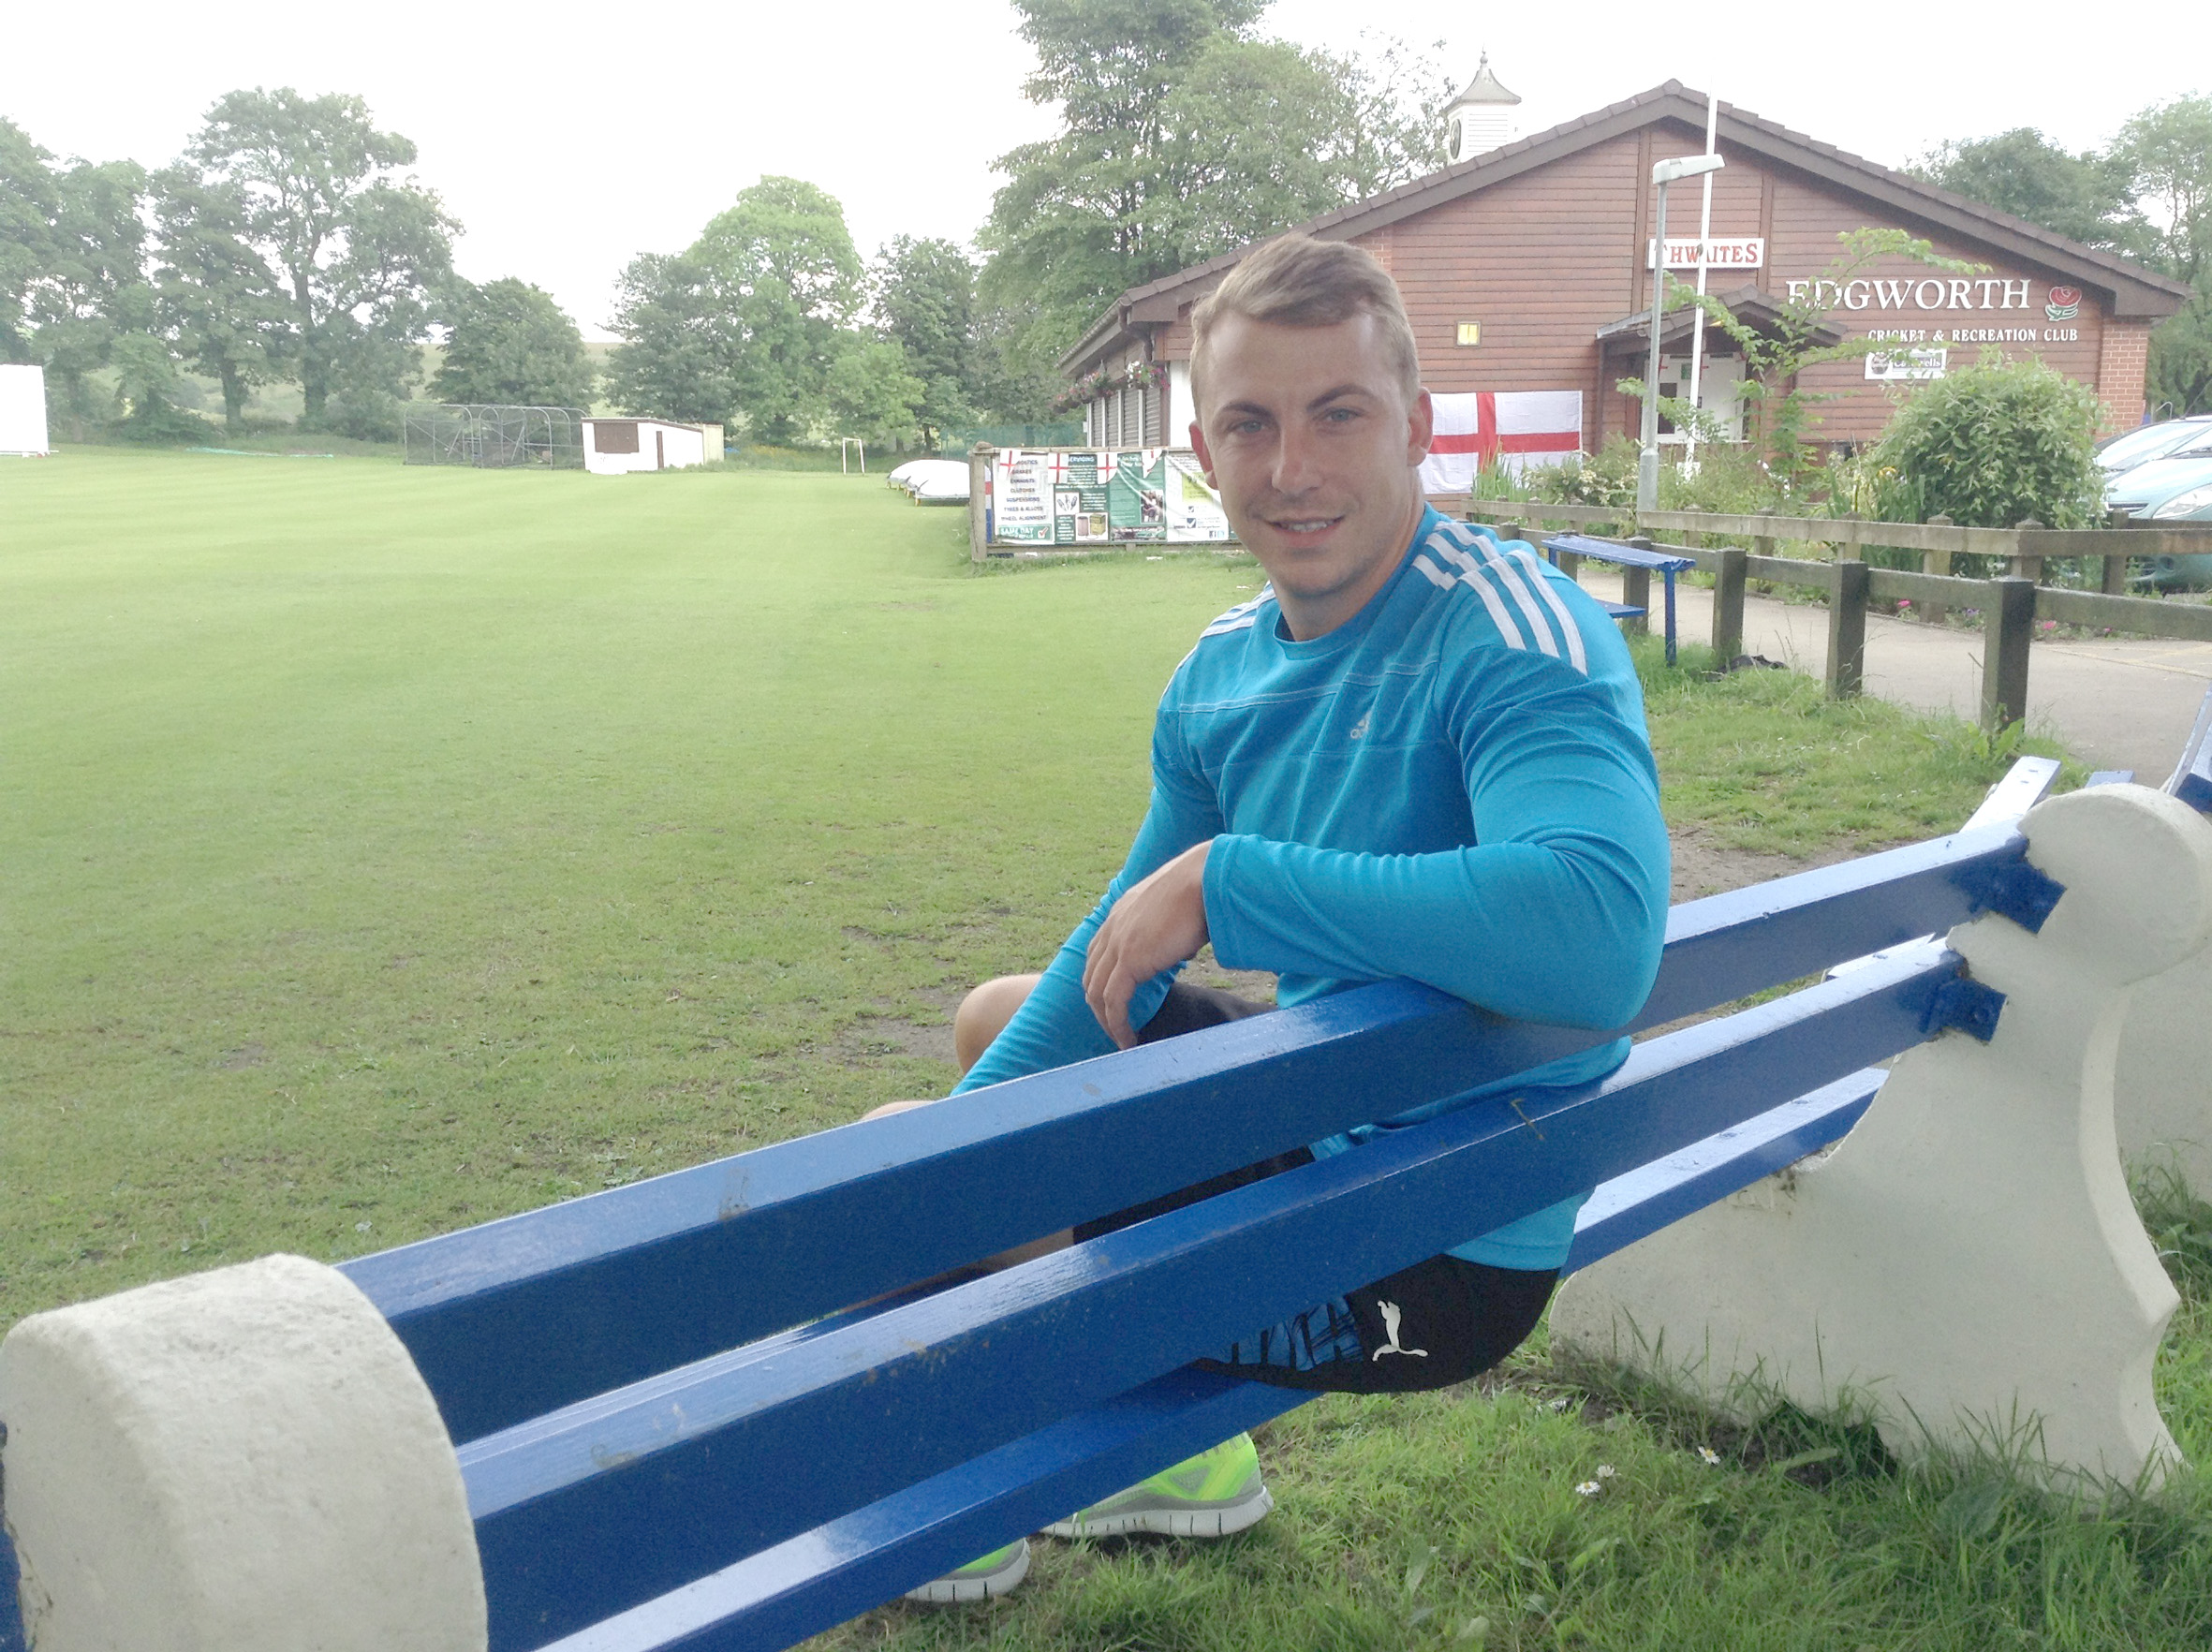 Jaco Fourie is loving life at Edgworth